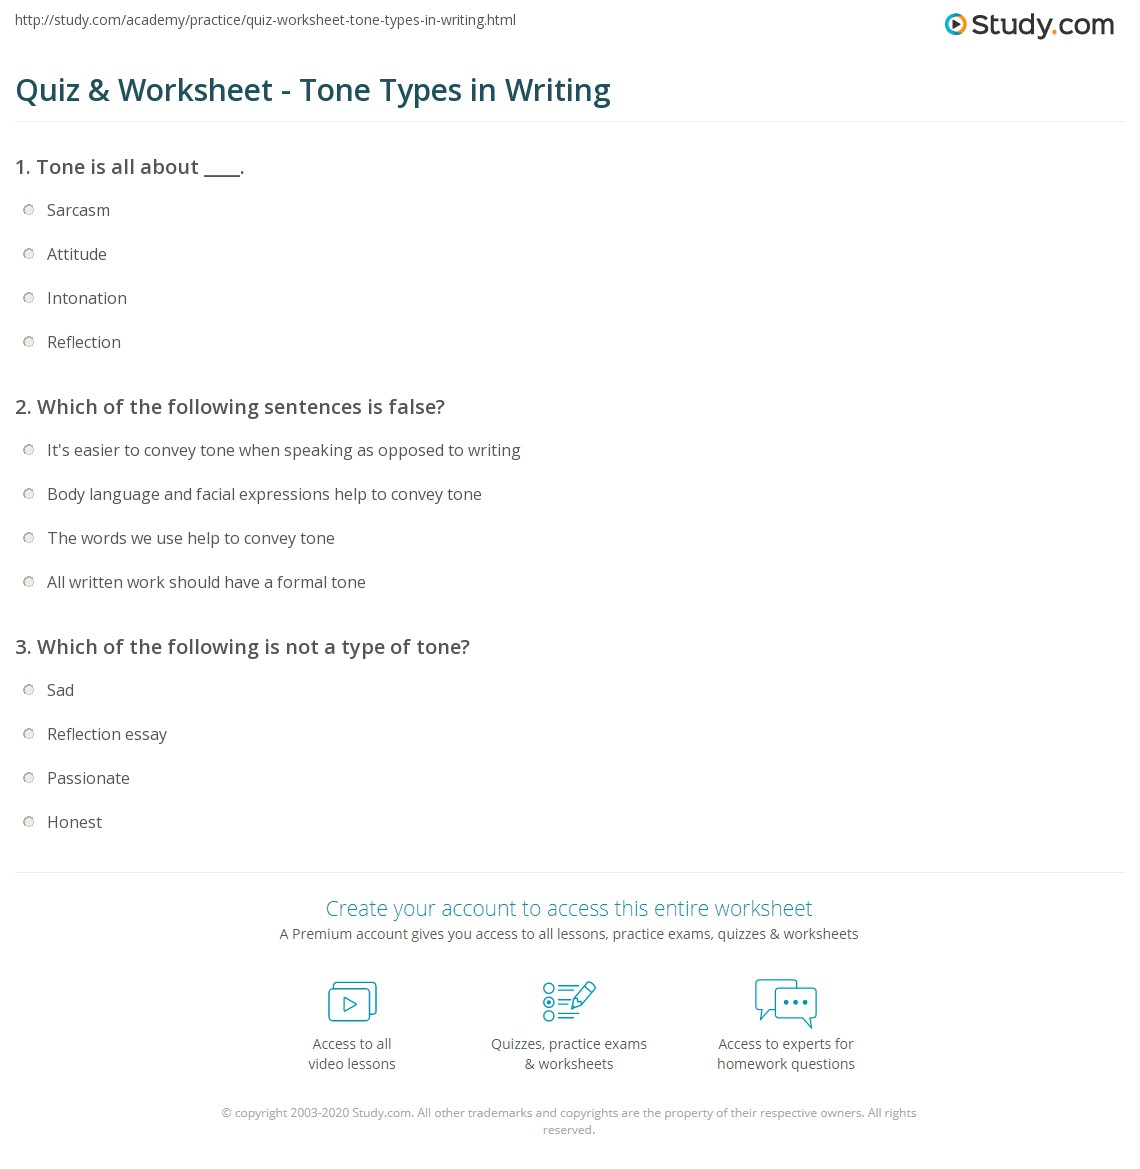 quiz worksheet tone types in writing com print different types of tones in writing worksheet